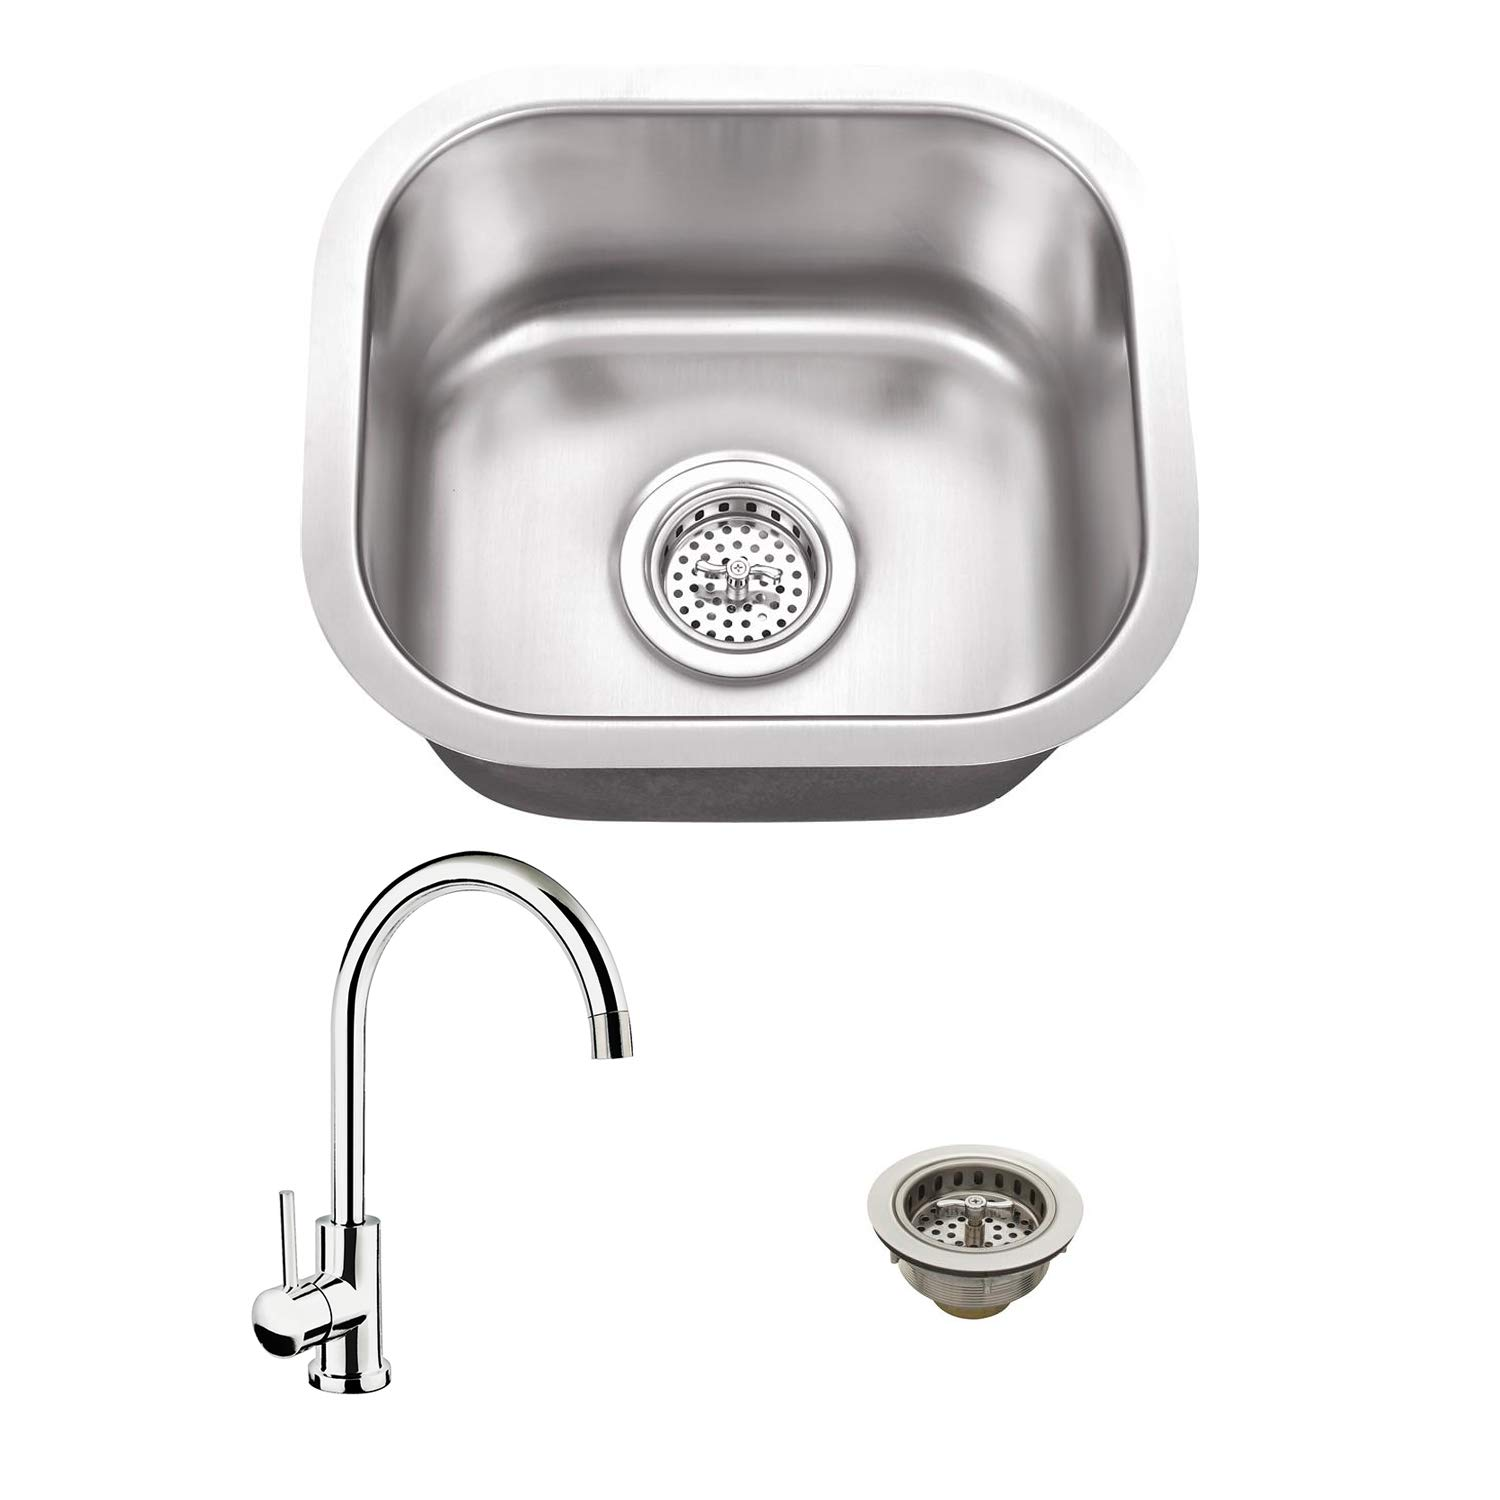 14-1/2-in x 13-in 18-Gauge Stainless Steel Single Bowl Bar Sink and Gooseneck Kitchen Faucet by Magnus Sinks